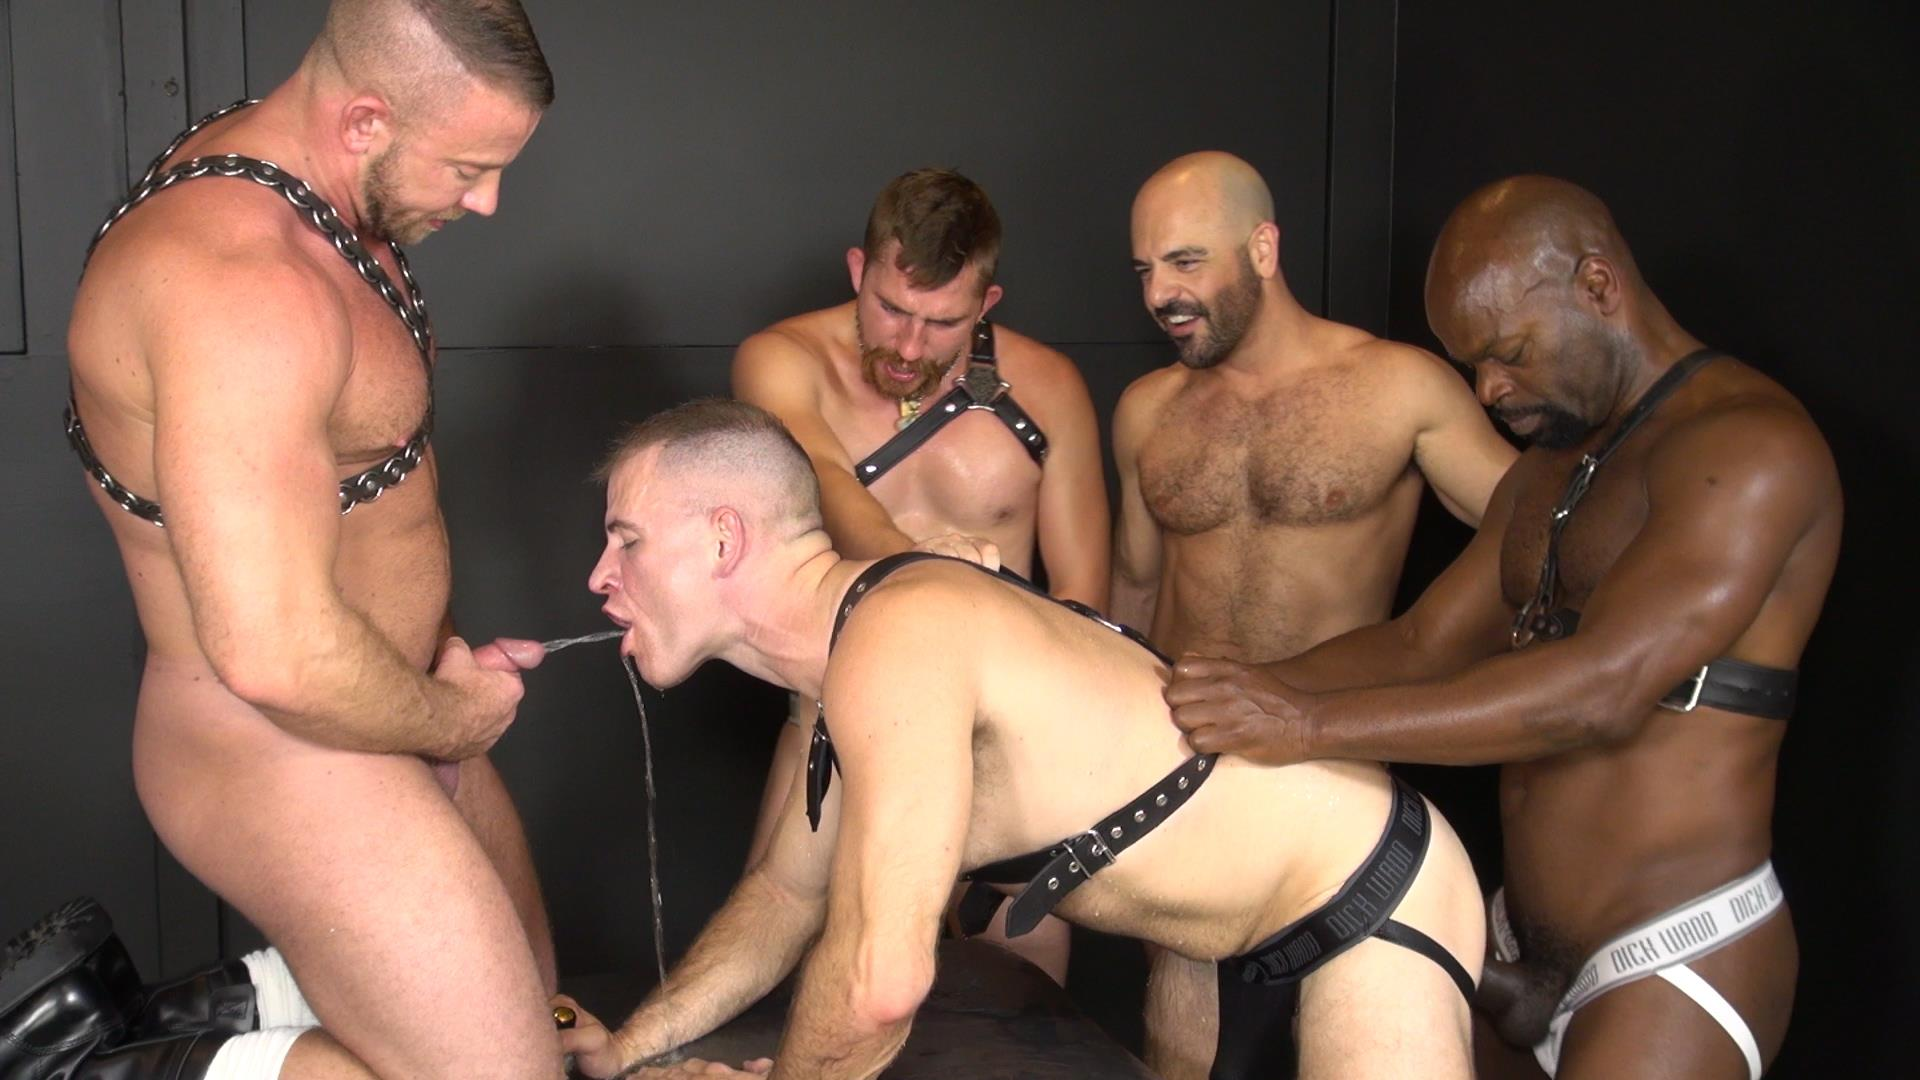 gay bedroom orgy amateur